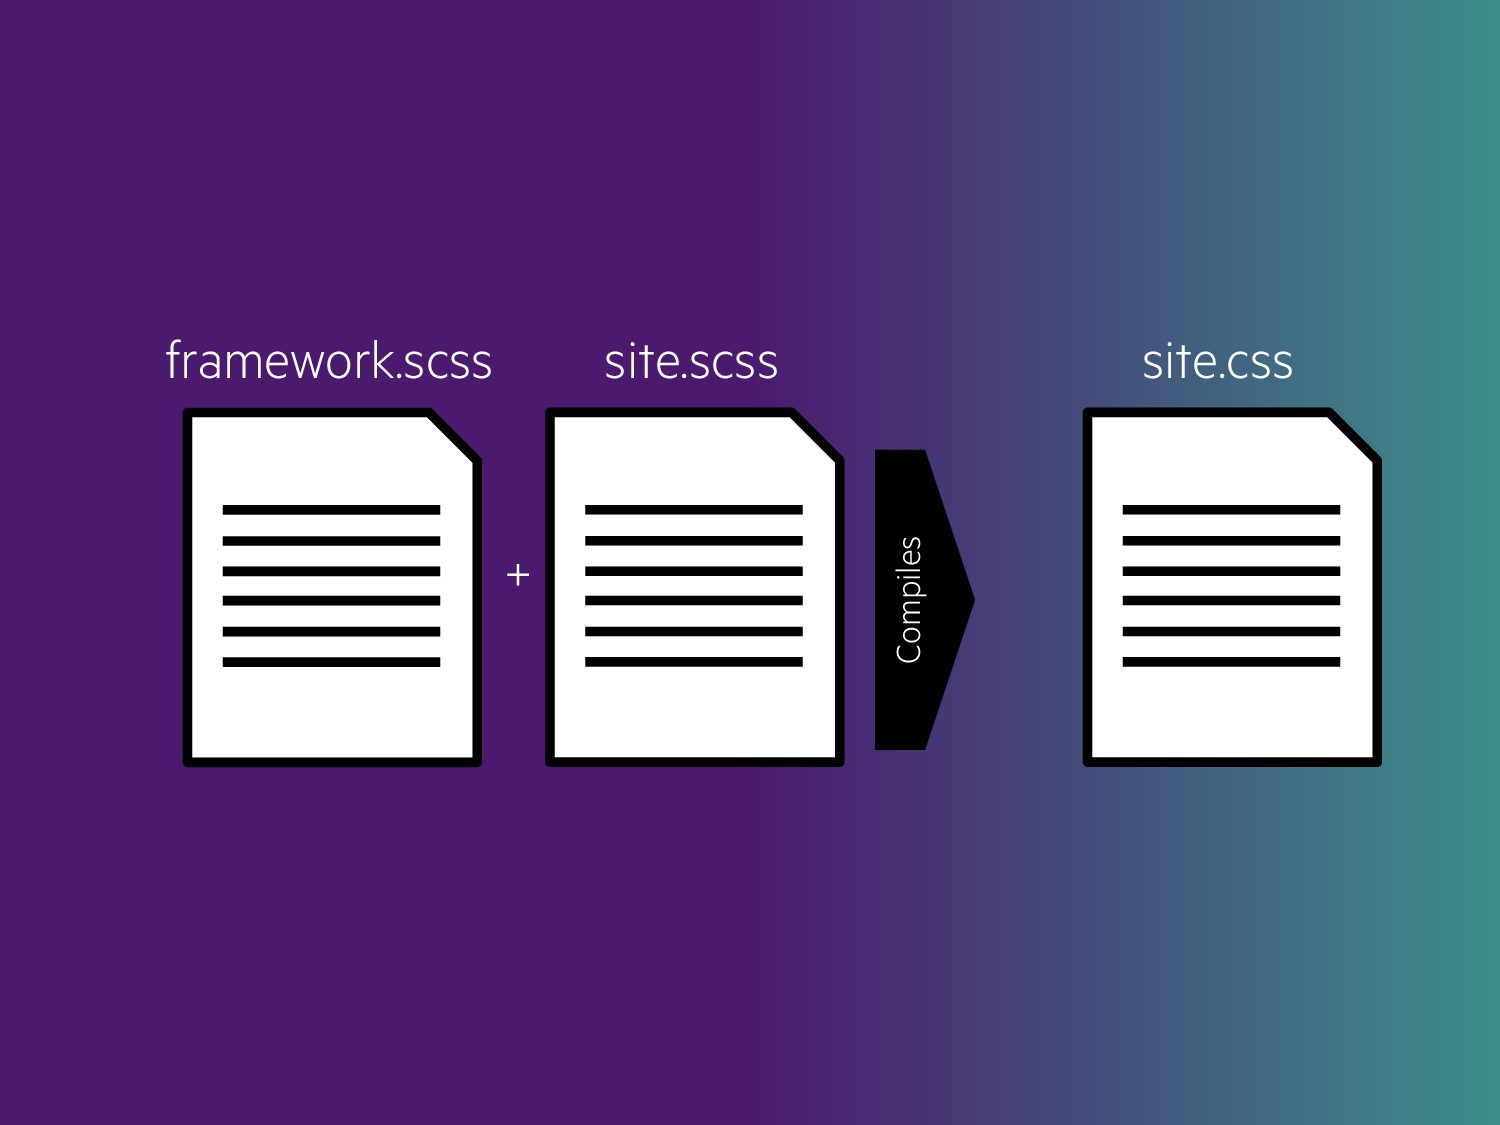 framework.scss site.scss + Compiles site.css